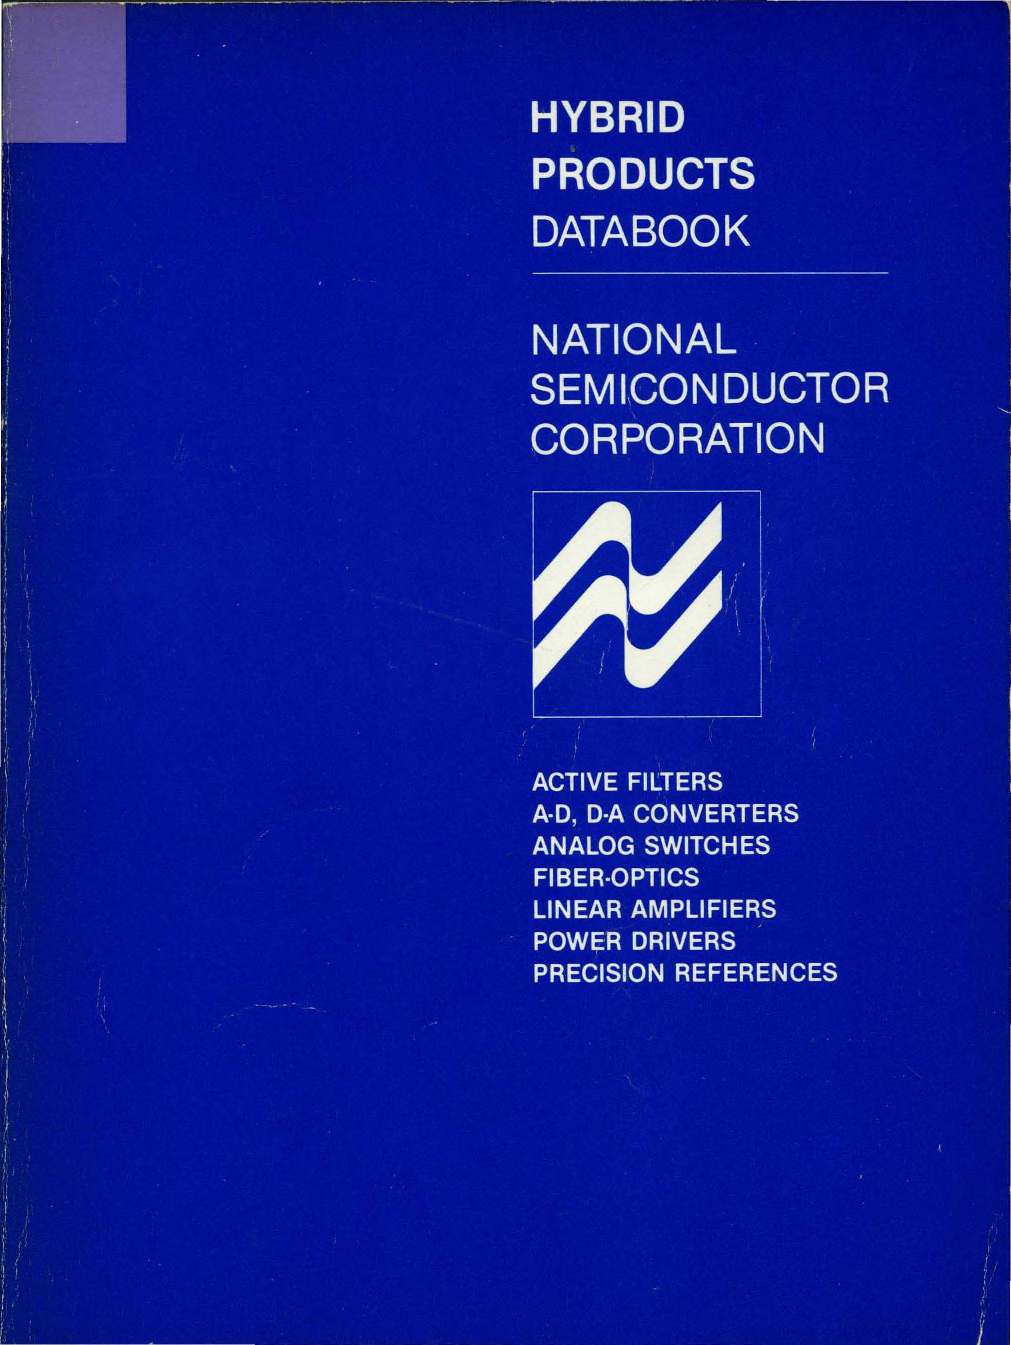 1982 National Hybrid Products Databook Piezoceramic Charge Amplifier Element14